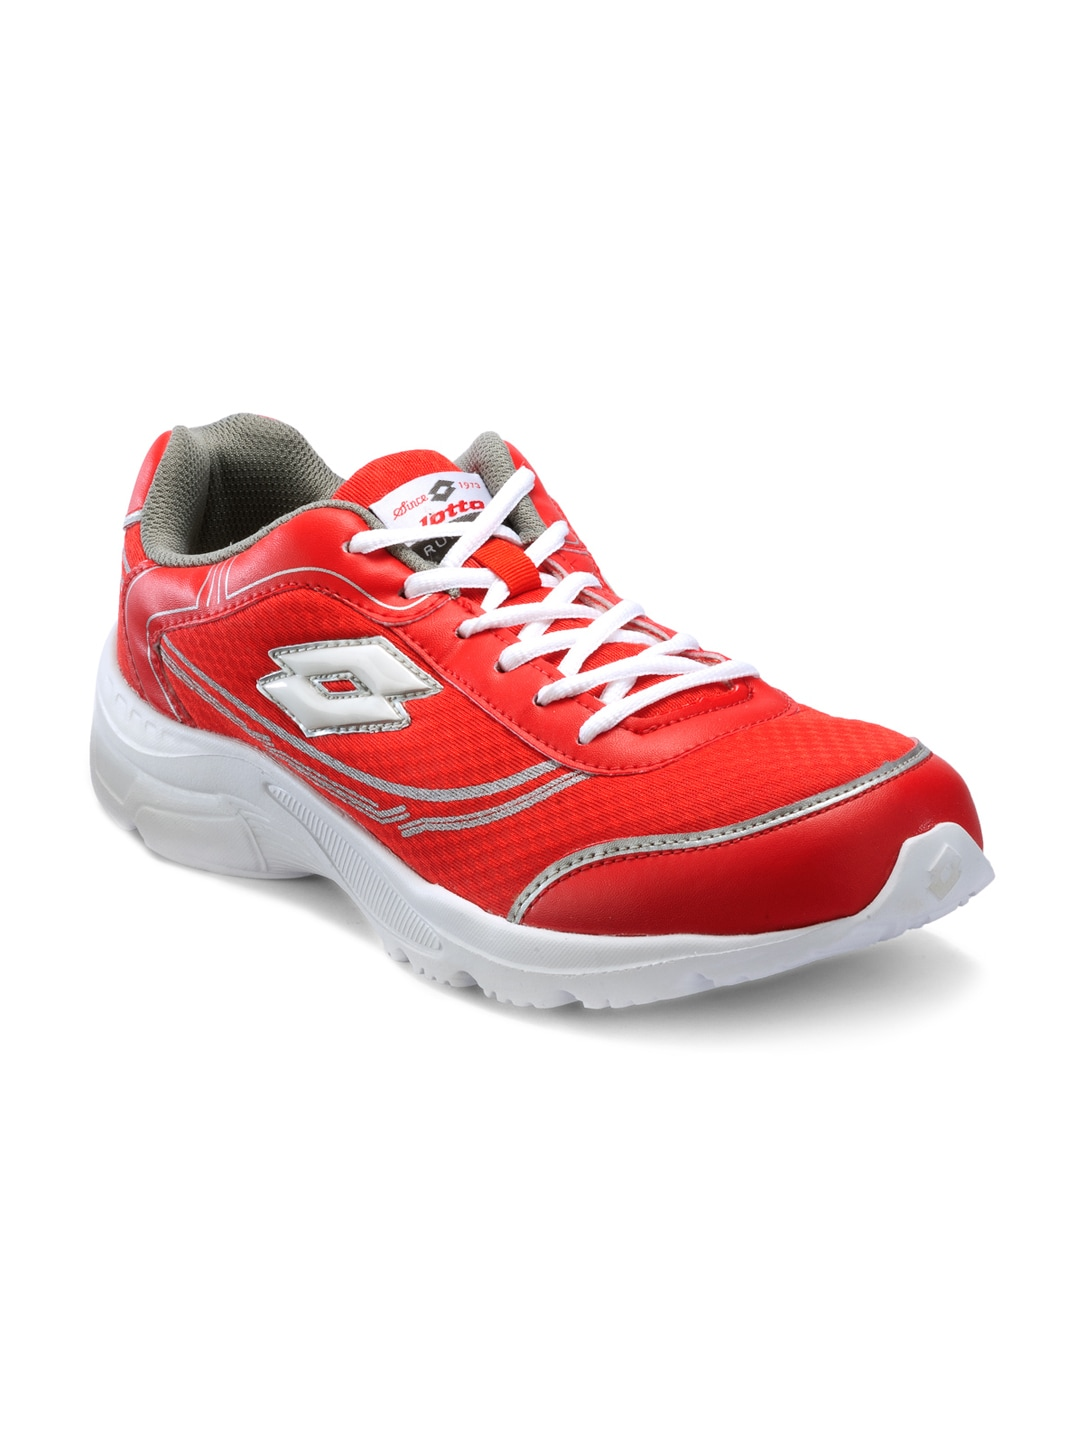 ebcc6e45185 Red Men Shoe - Buy Red Men Shoe online in India